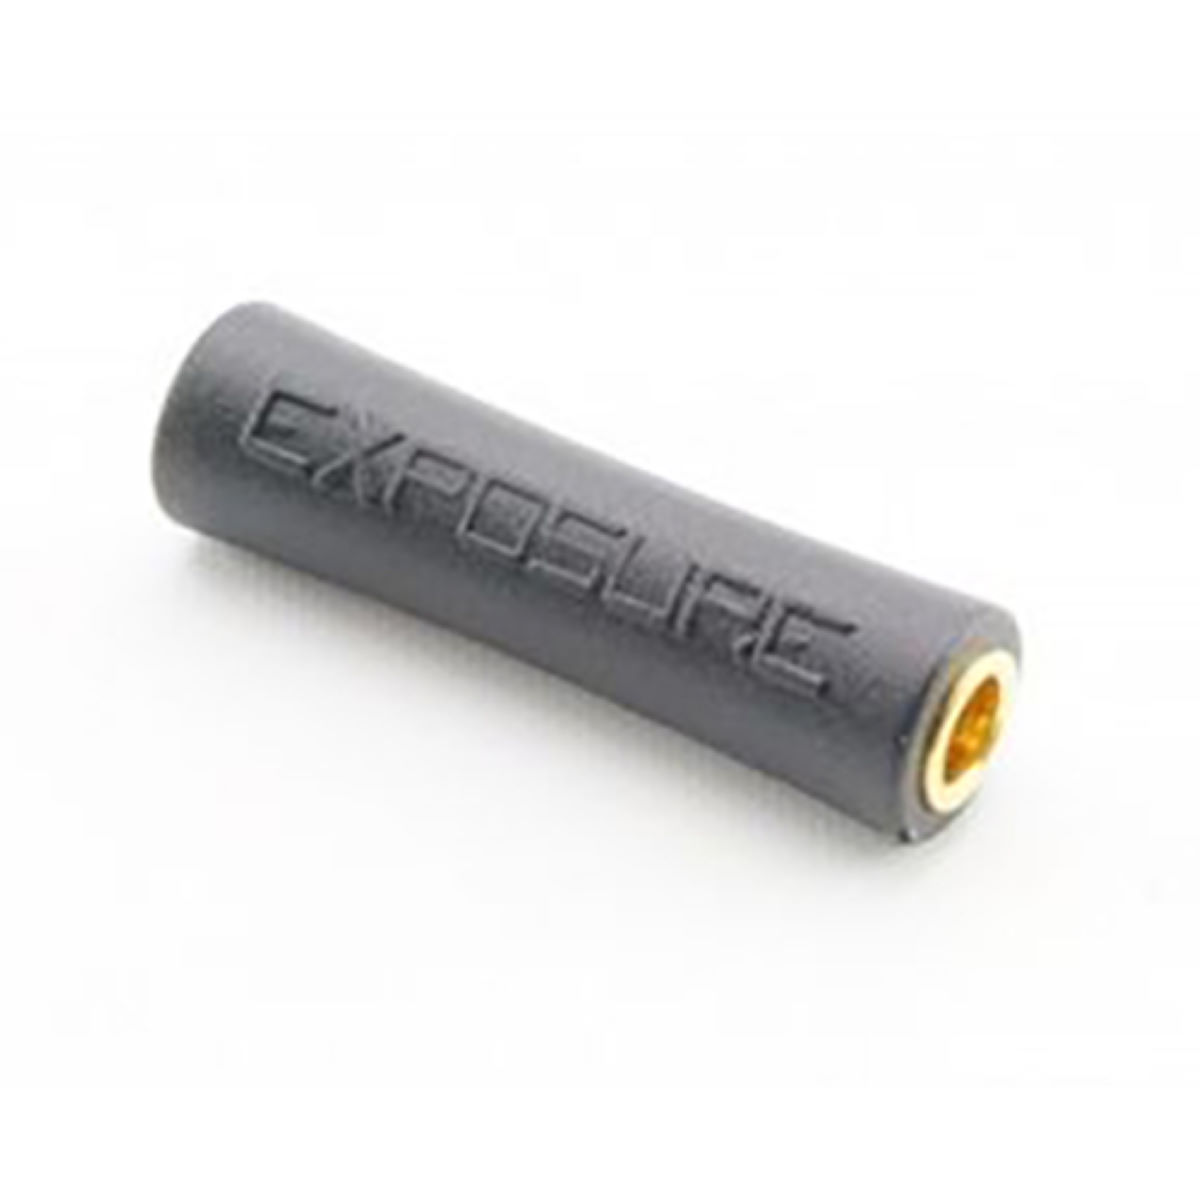 Exposure Exposure Piggyback Or Support Cell Connector For Charging   Batteries